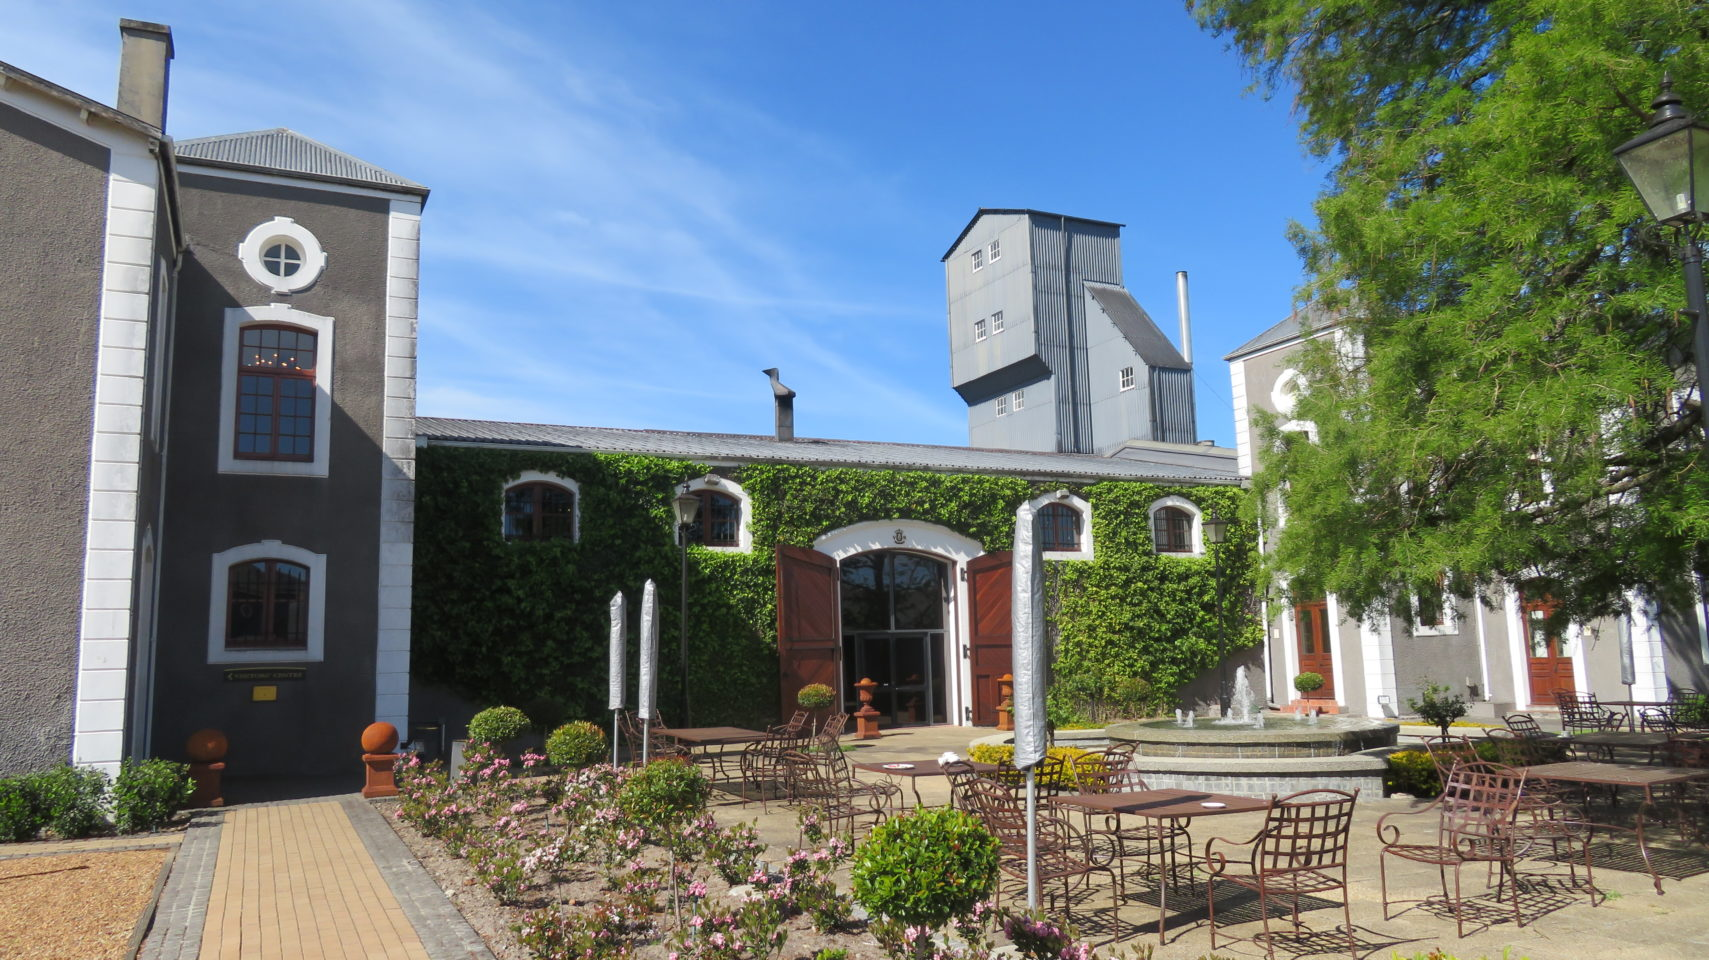 Van Ryn's Distillery in Stellenbosch, South Africa